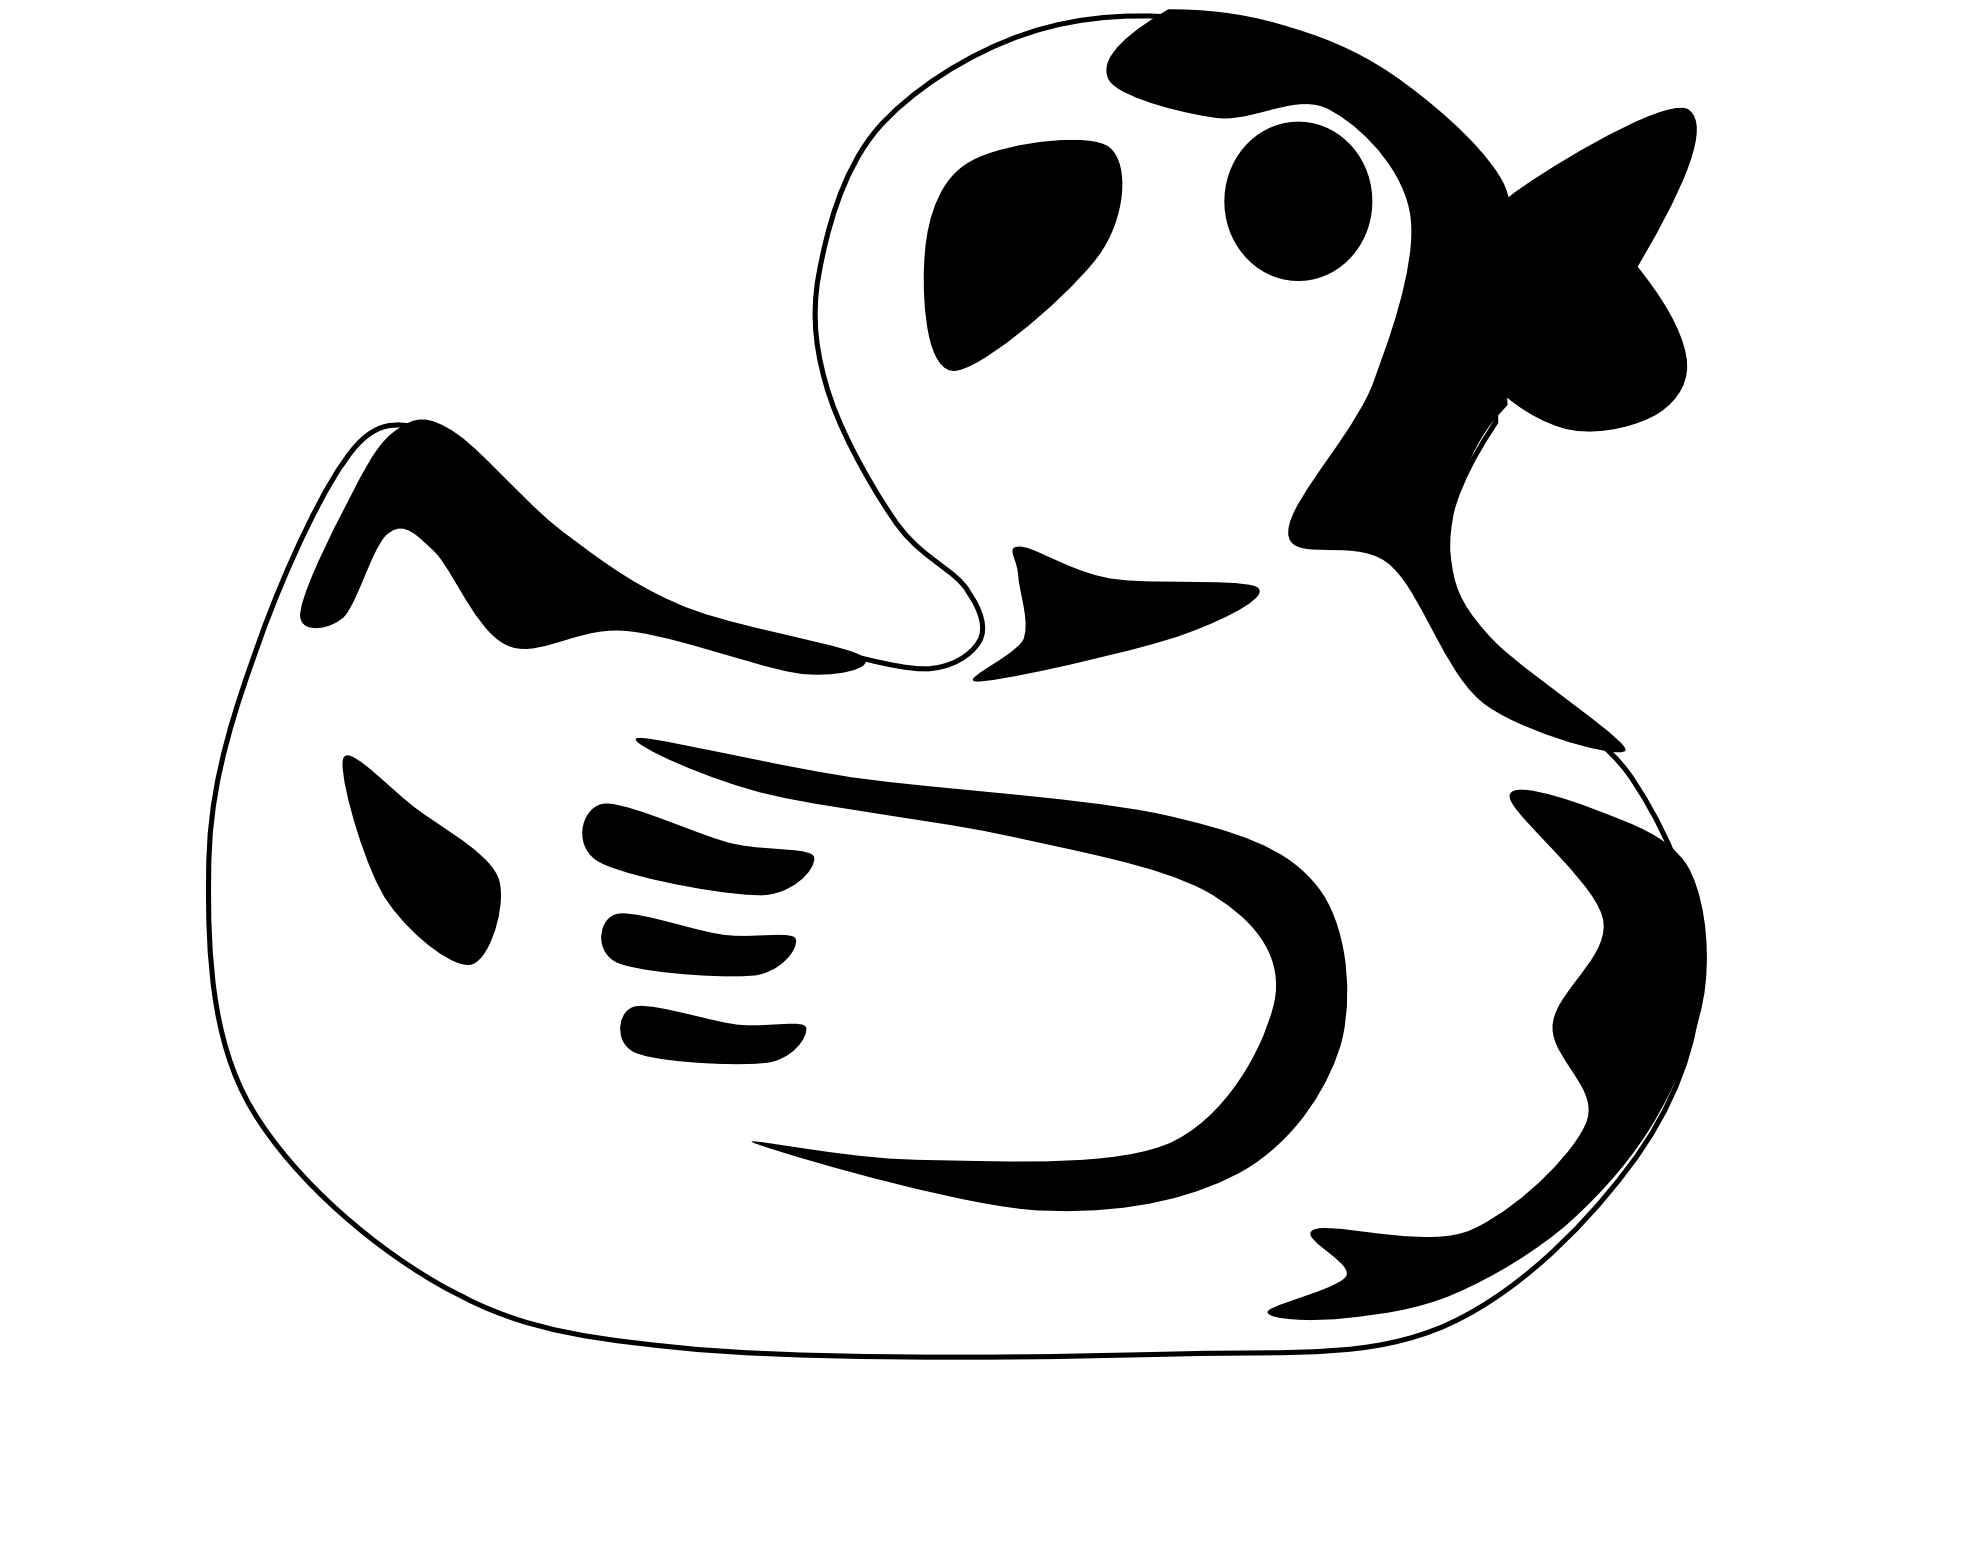 Coloring clipart duck. Black and white panda